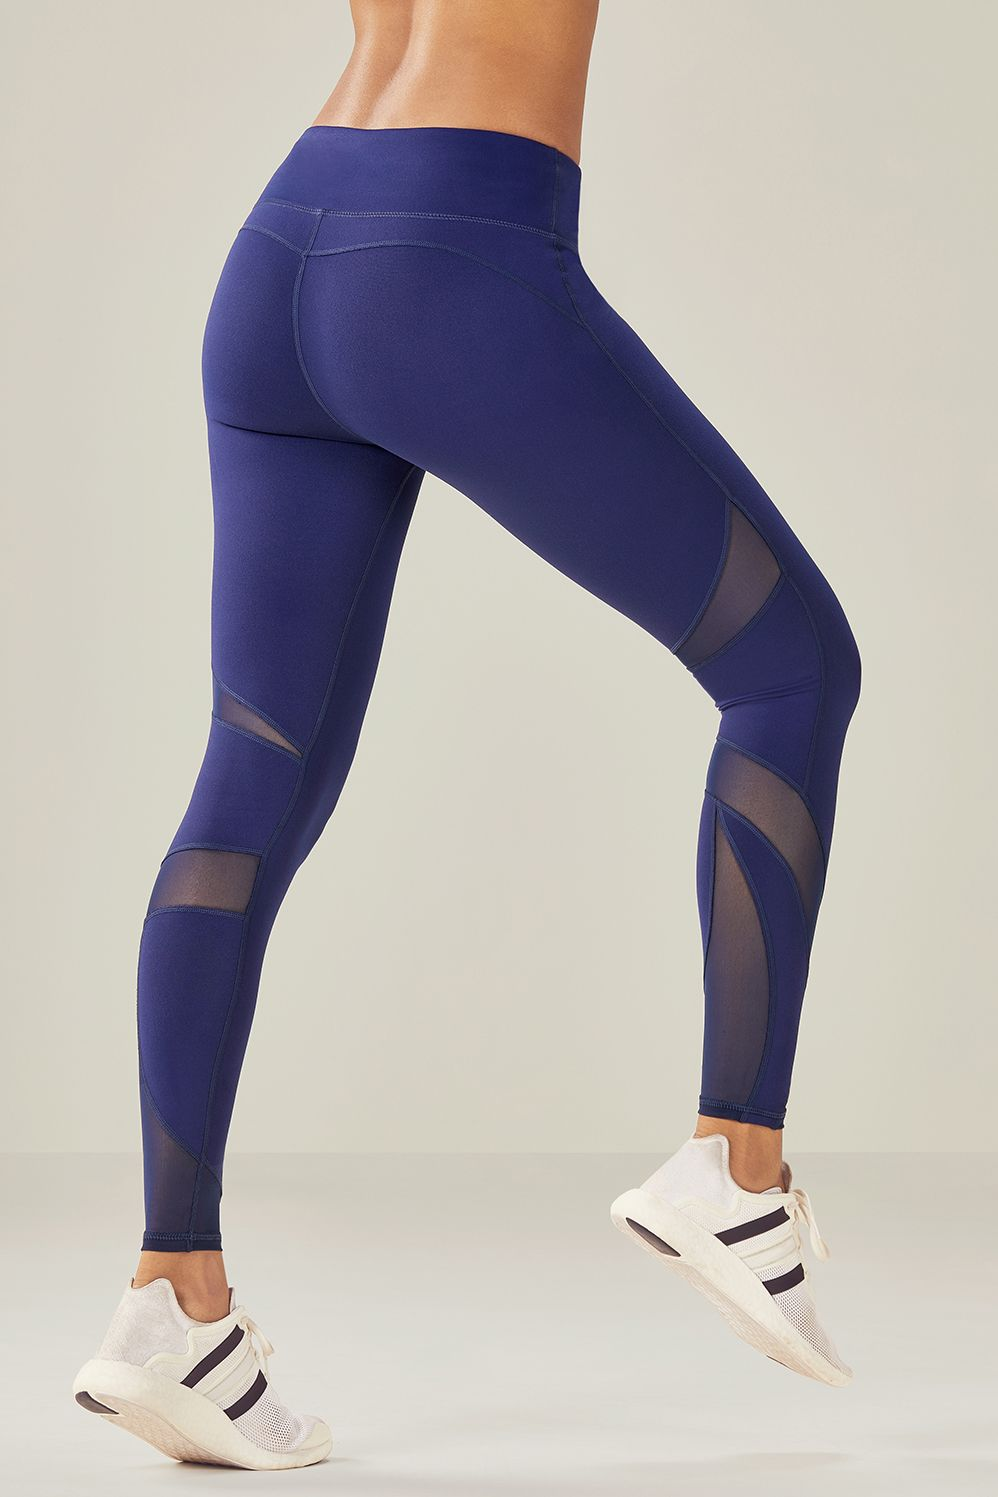 a8b988c83eaf27 Fabletics Tight Salar Mesh Powerhold Legging Womens Blue Size 1X